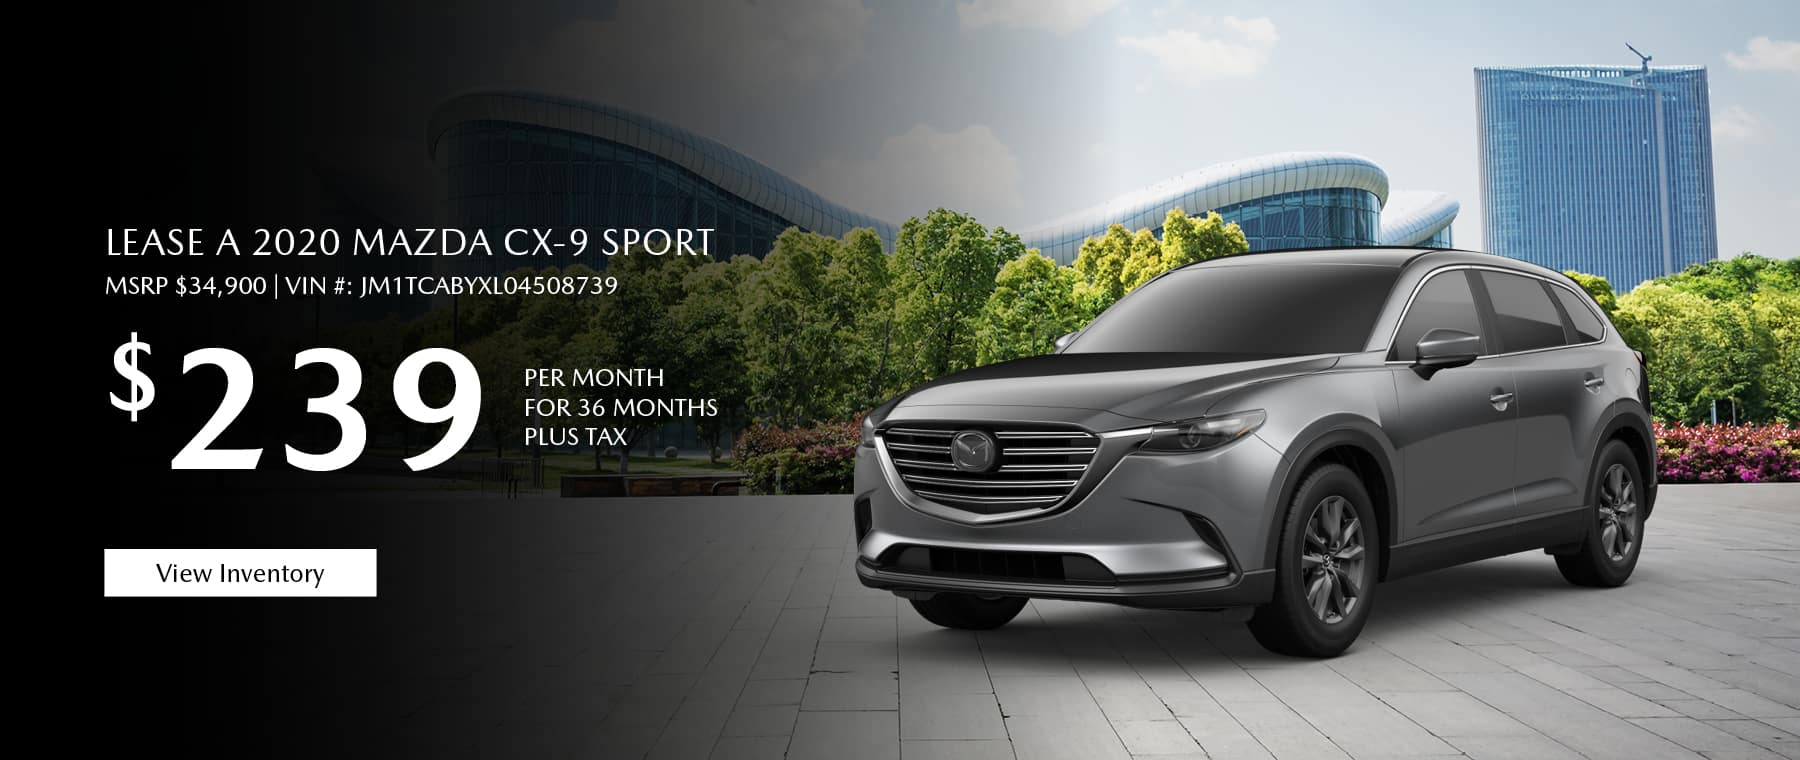 Lease the 2020 Mazda CX-9 for $239 per month, plus tax.